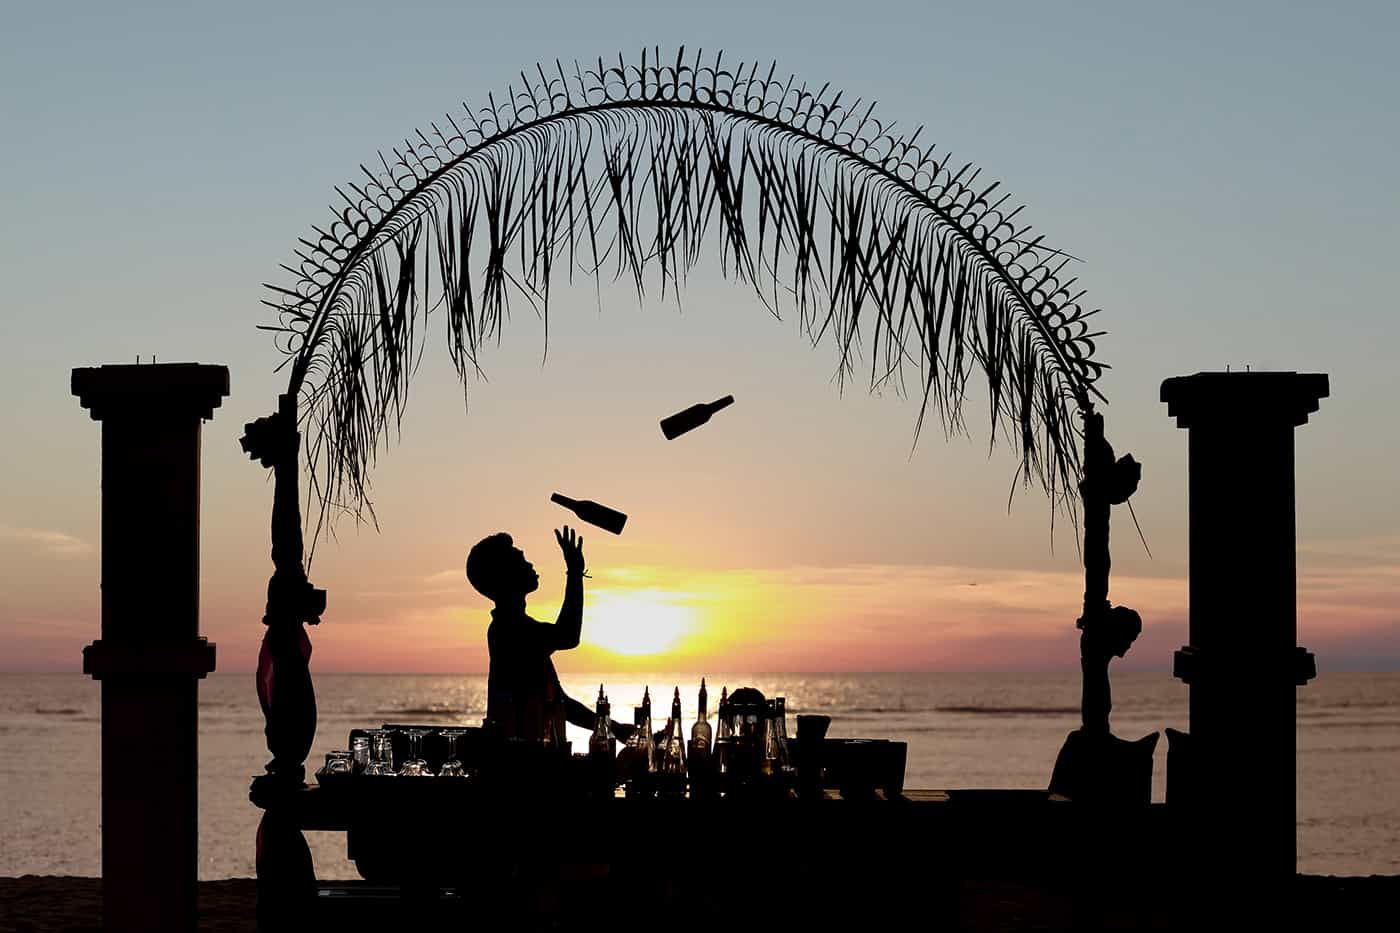 Sunset beach cocktails at Hotel Ombak Sunset in Gili Trawangan Island of Lombok Indonesia